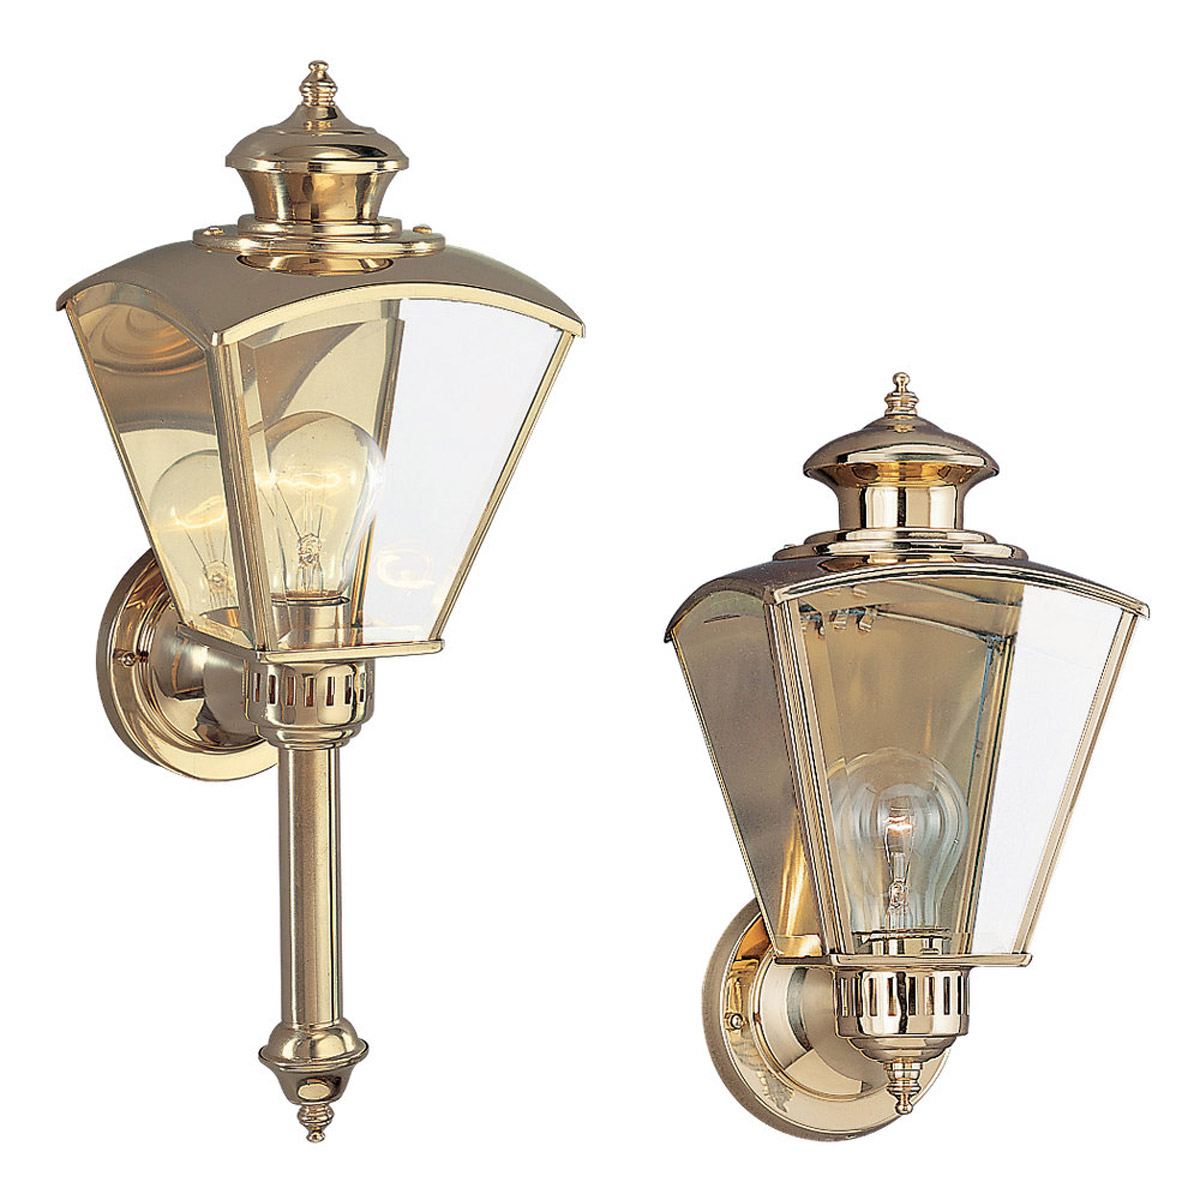 Sea Gull Lighting New Castle 1 Light Outdoor Wall Lantern in Polished Brass 8504-02